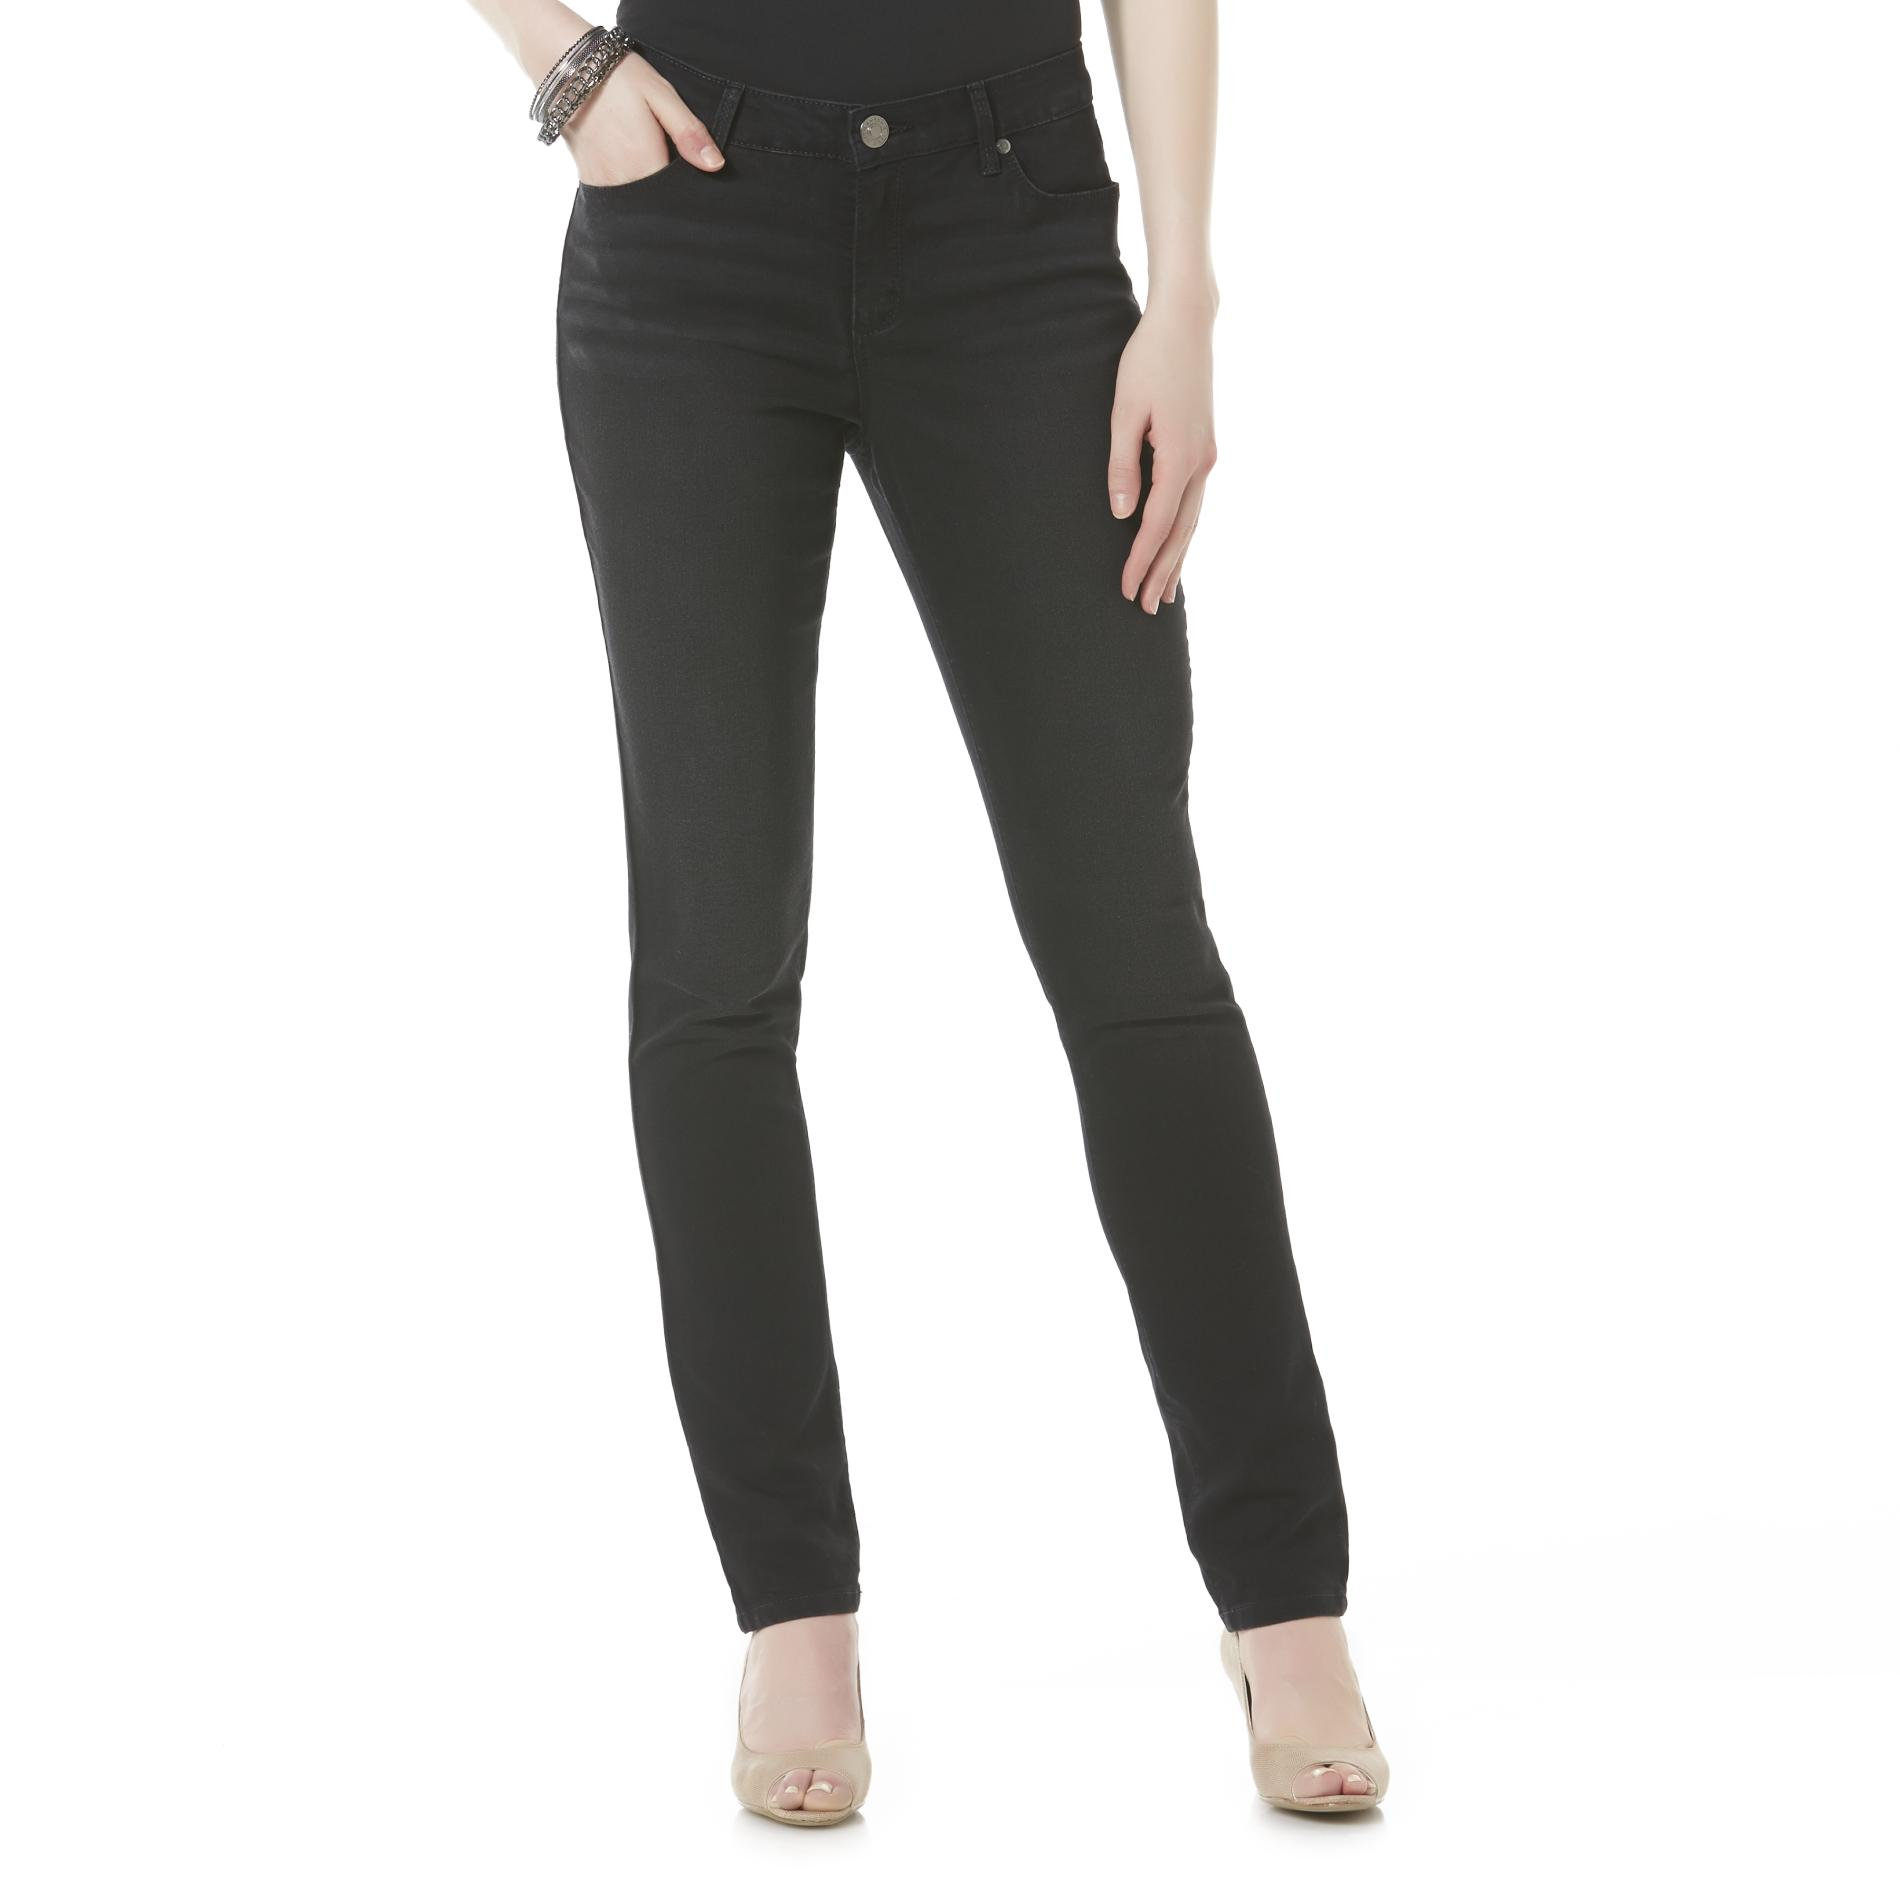 Canyon River Blues Women' Skinny Straight Jeans